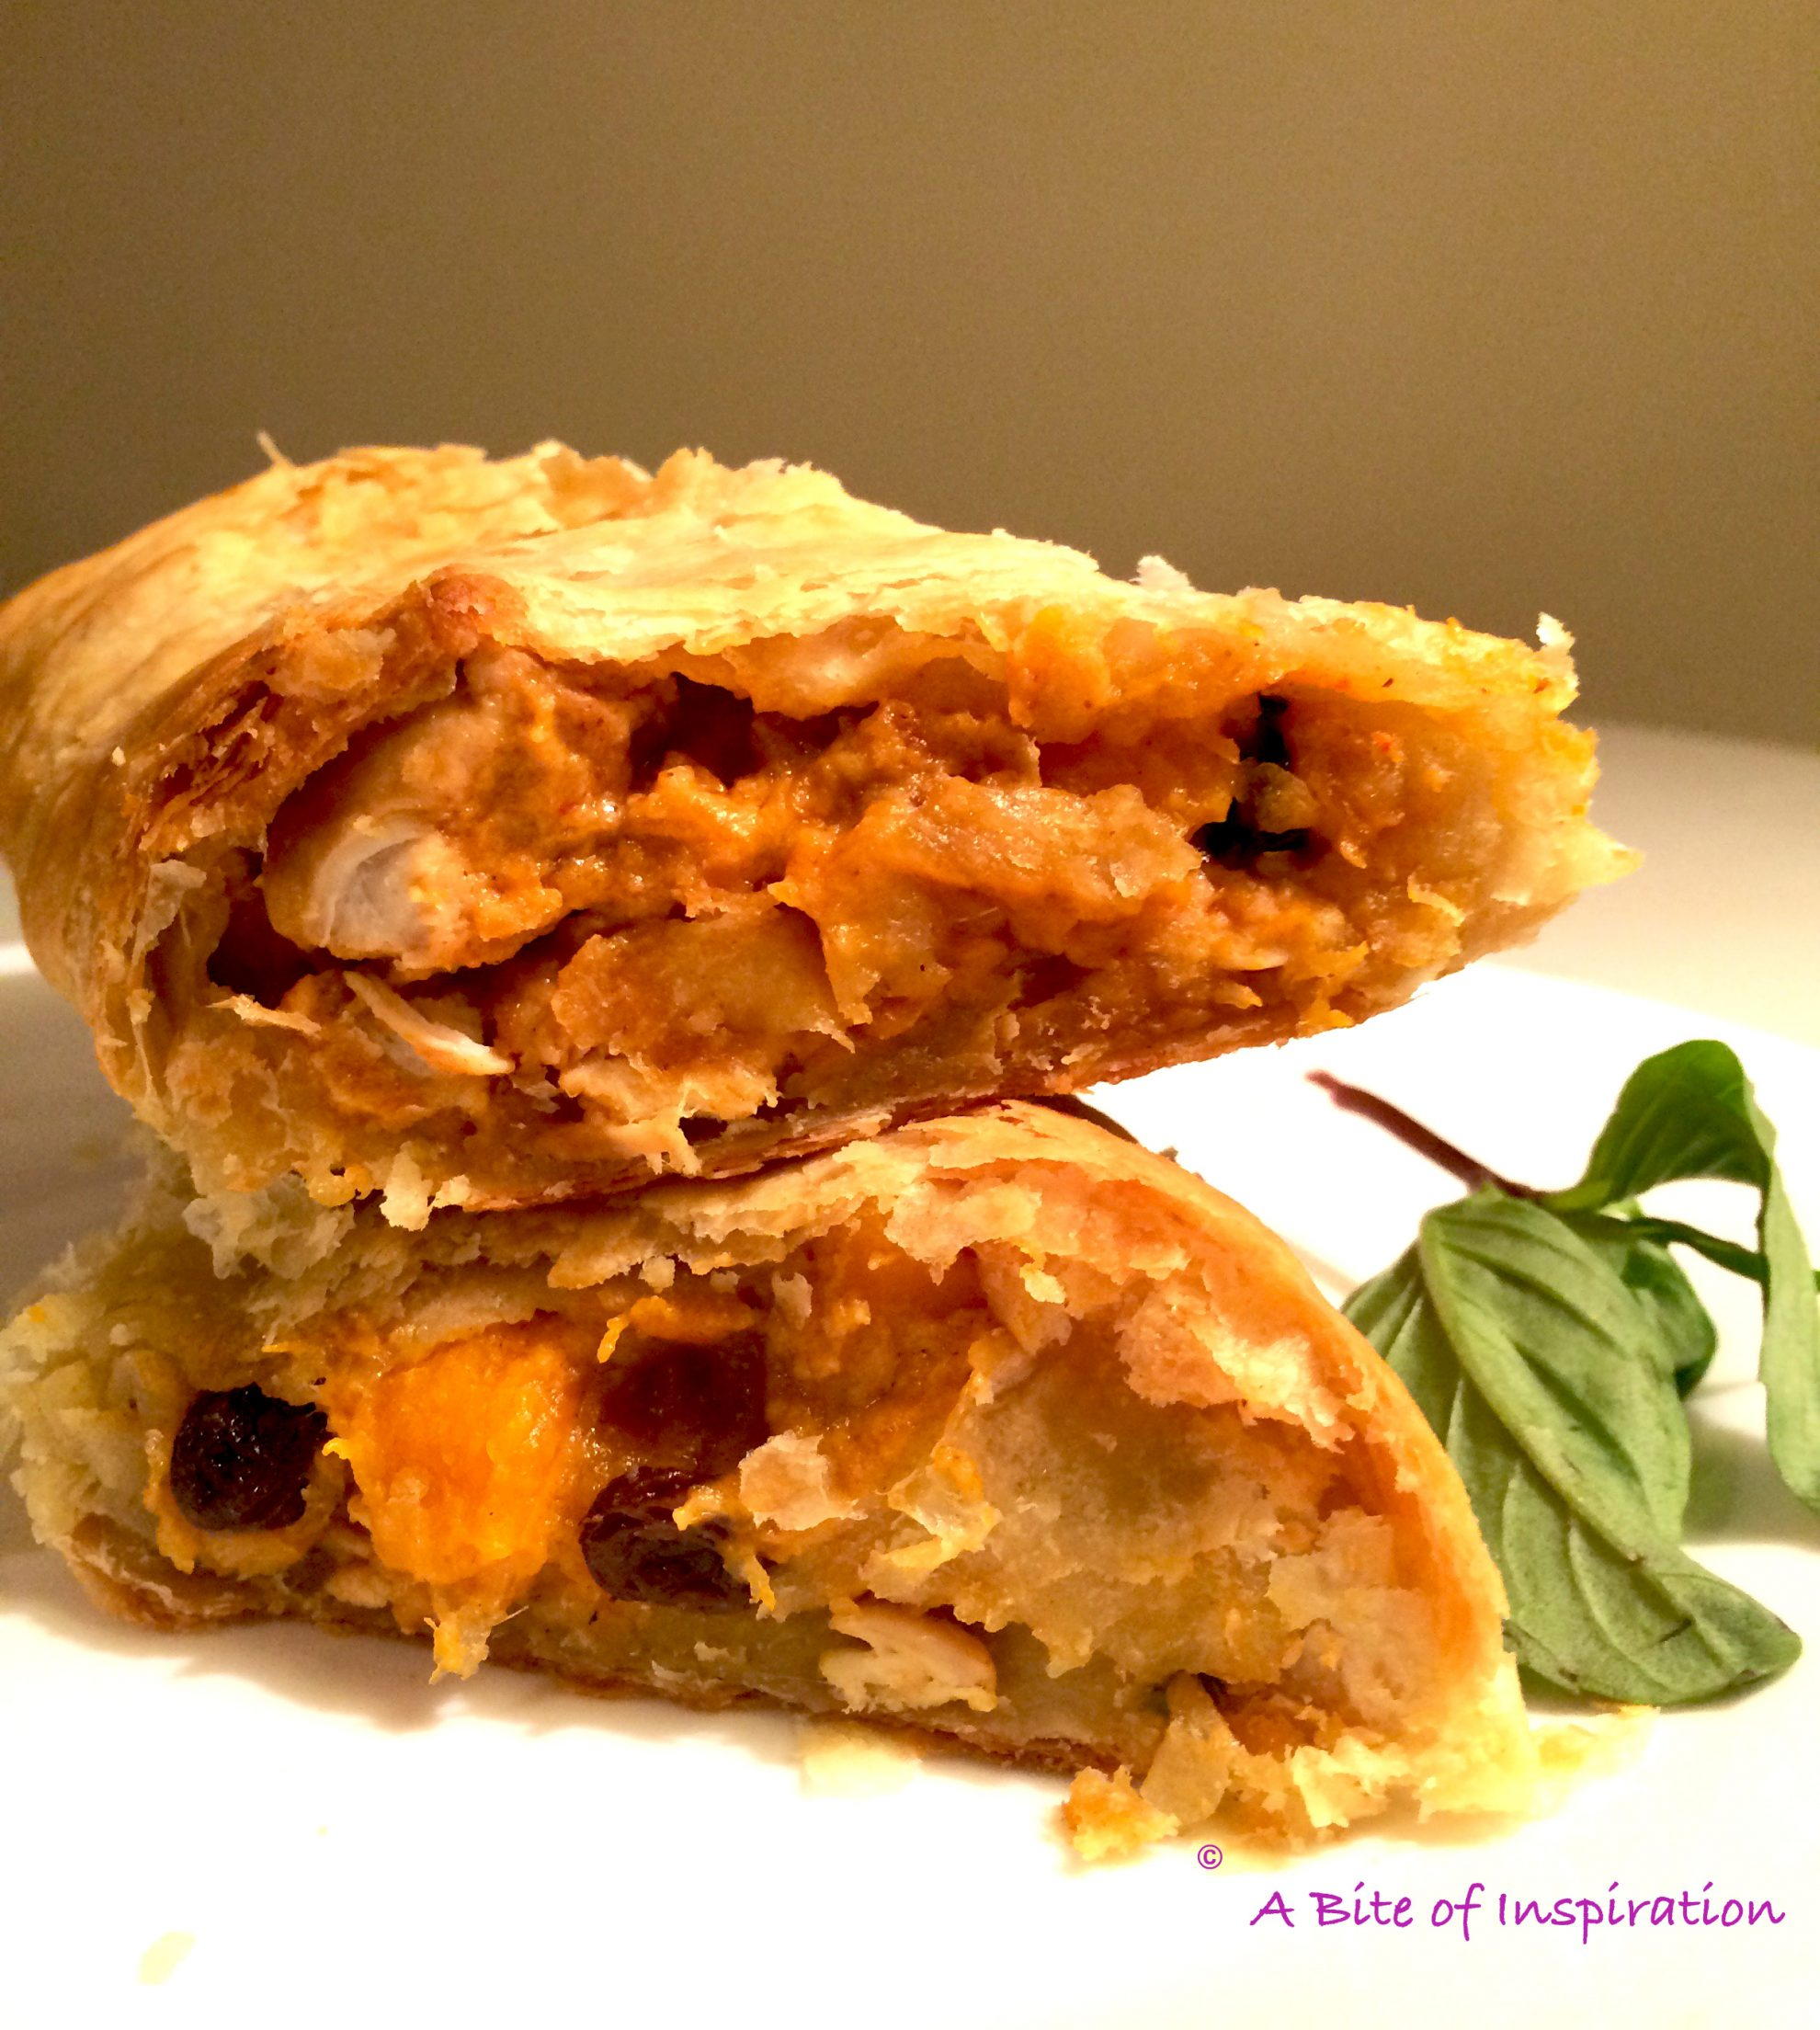 Thai Chicken Curry Strudel photo in bad lighting shows the best photography tips and tricks to improve food photography